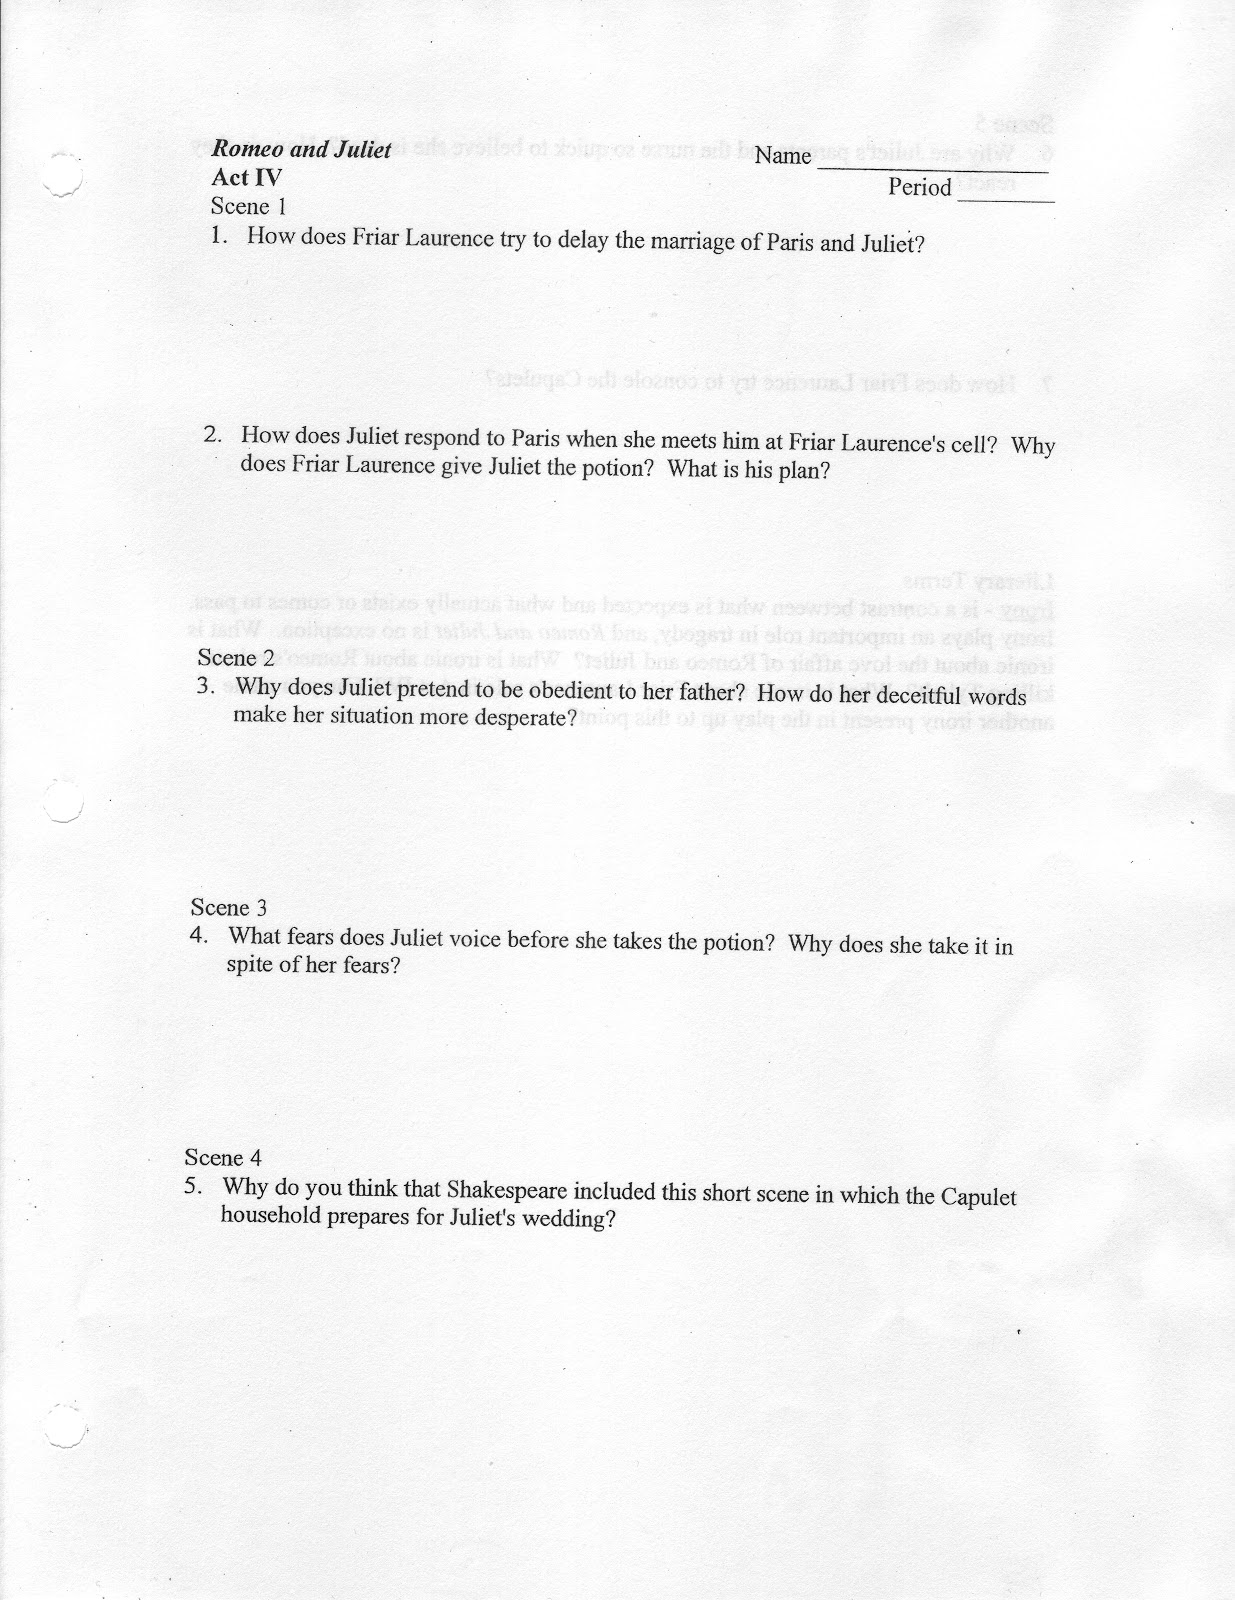 essay questions for romeo and juliet romeo and juliet act ii essay  romeo and juliet act ii essay questions romeo and juliet act ii essay questions